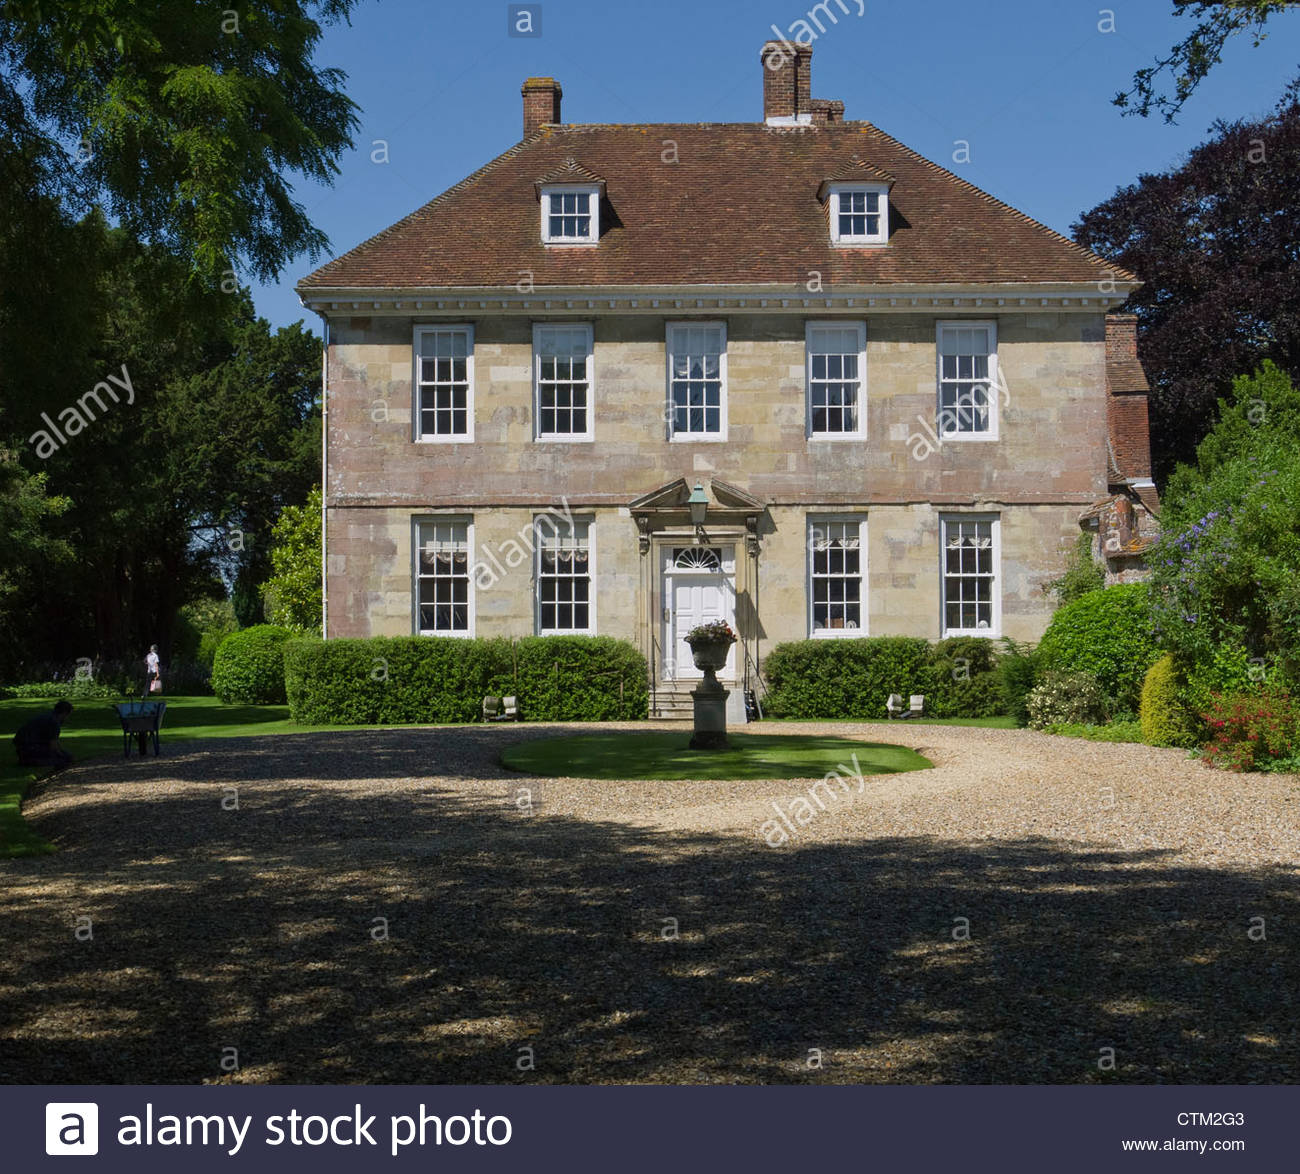 The Rt Hon Sir Edward Heath KG MBE Prime Minister 1970-1974 Lived Here at Arundells Salisbury Wiltshire England - Stock Image